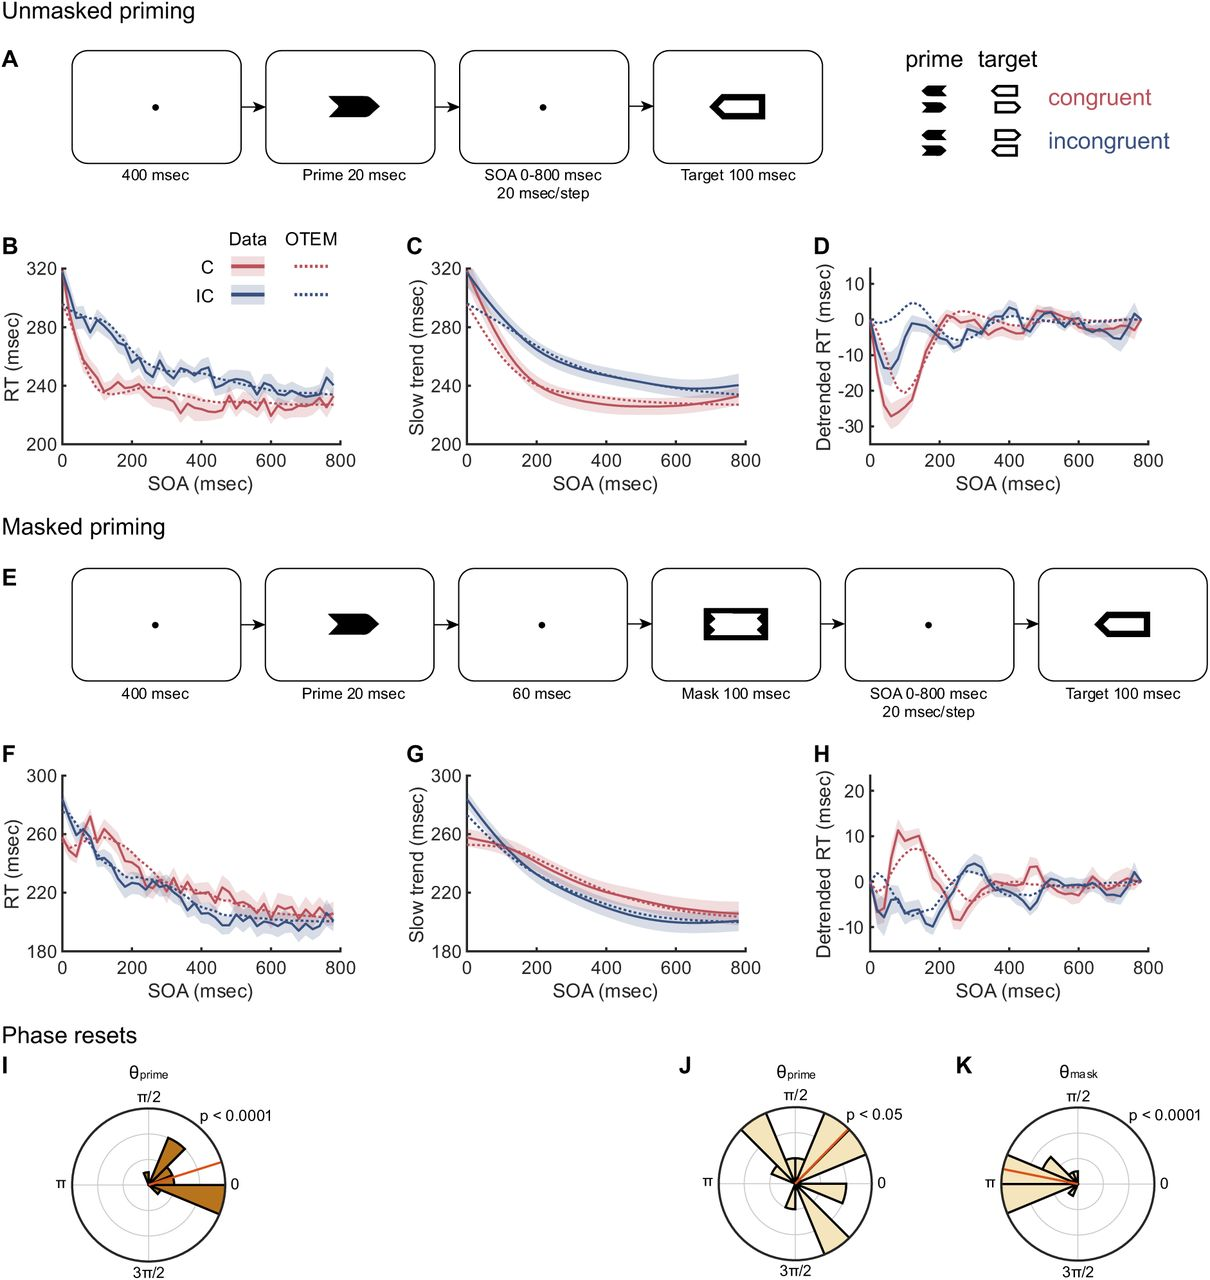 Sustained visual priming effects can emerge from attentional